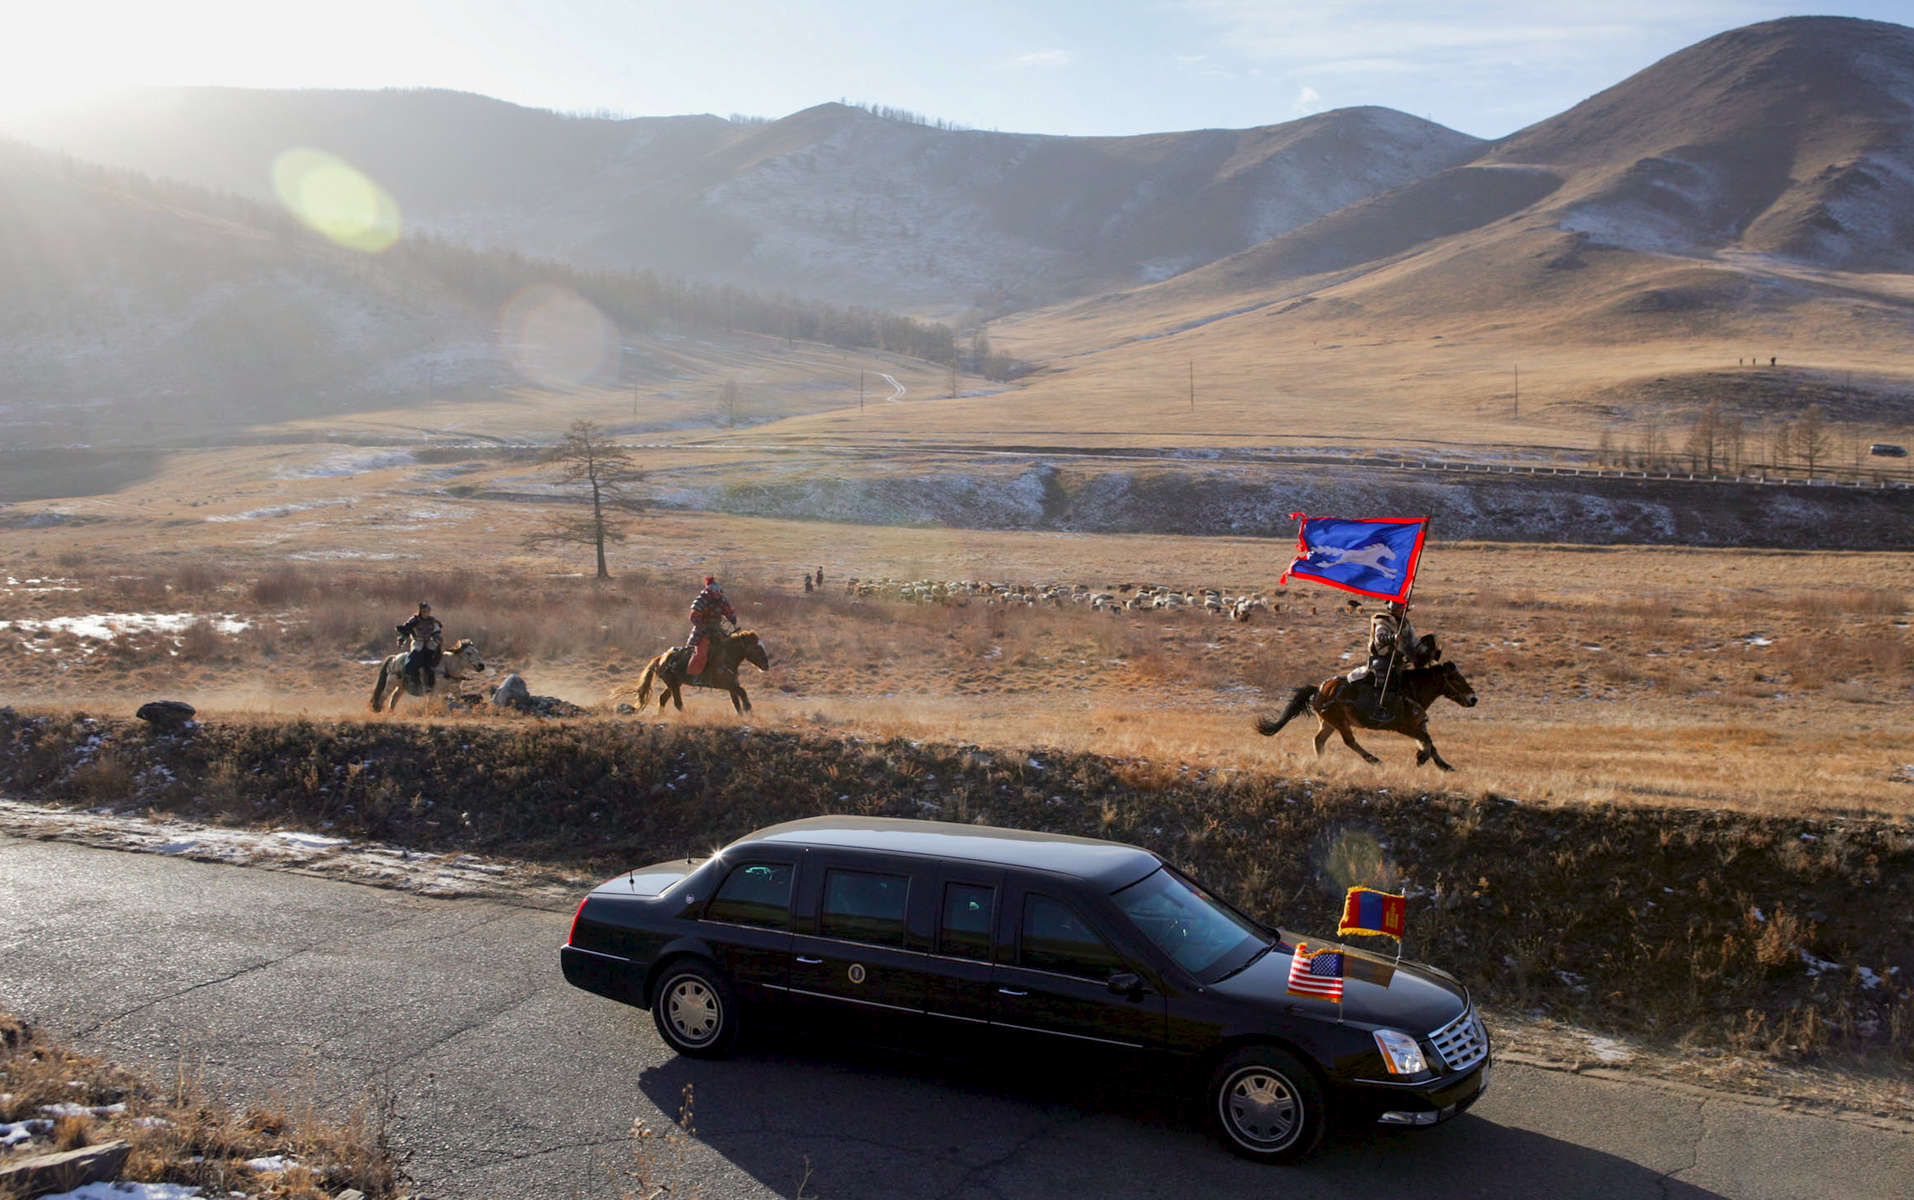 President Bush, Laura Bush: Presidential limousine, Mongolian horsemen en route Cultural event. Ikh Tenger, Herder Family Ger. Mongolia. Mongolian horsemen run with the motocade carrying President George W. Bush and Mrs. Bush to a cultural event in Ikh Tenger, Mongolia Monday, Nov. 21, 2005. The stop in Mongolia was the final one for the Bushes in a 7-day visit to Asia. White House photo by Paul MorseJUMBO